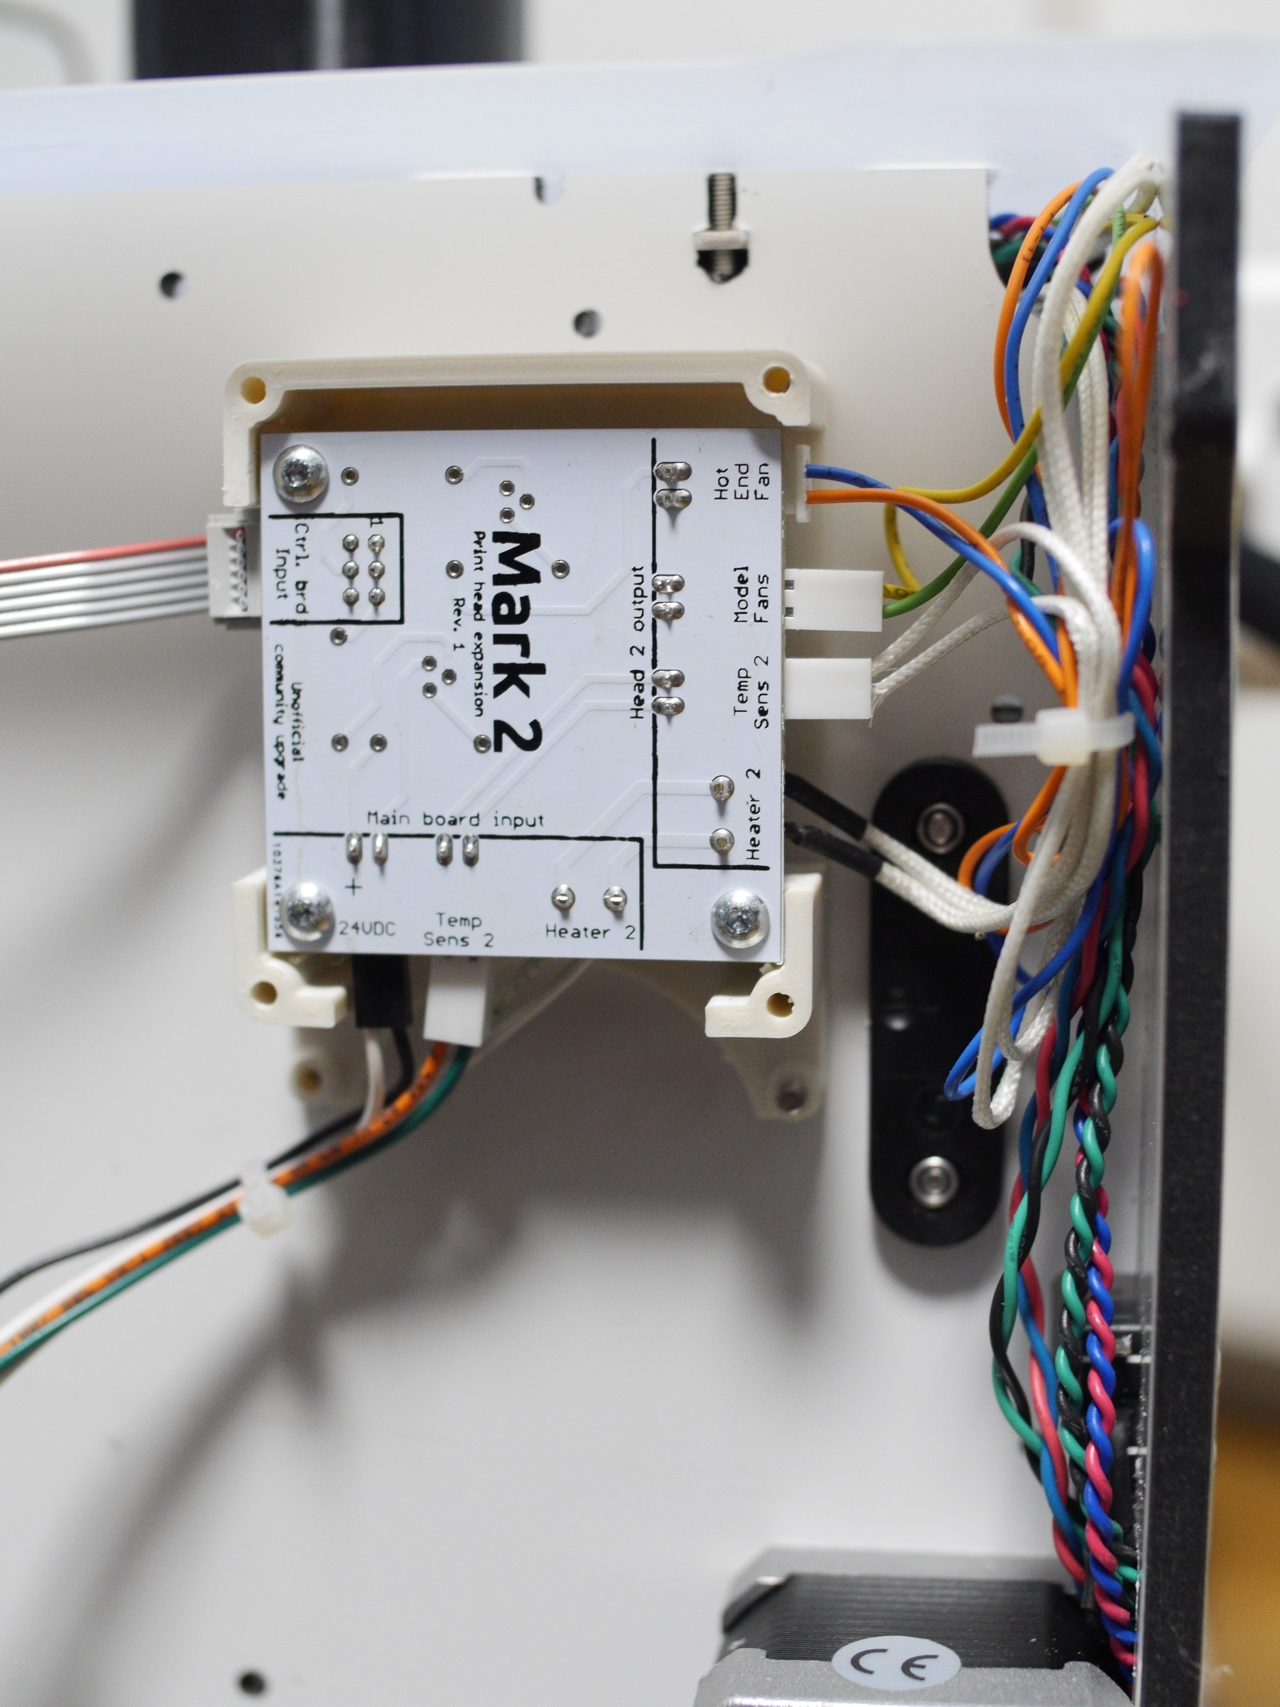 hight resolution of i cannot recommend strongly enough using a cable tie around the main board wires this will prevent the non locking 24 volt header from accidentally getting